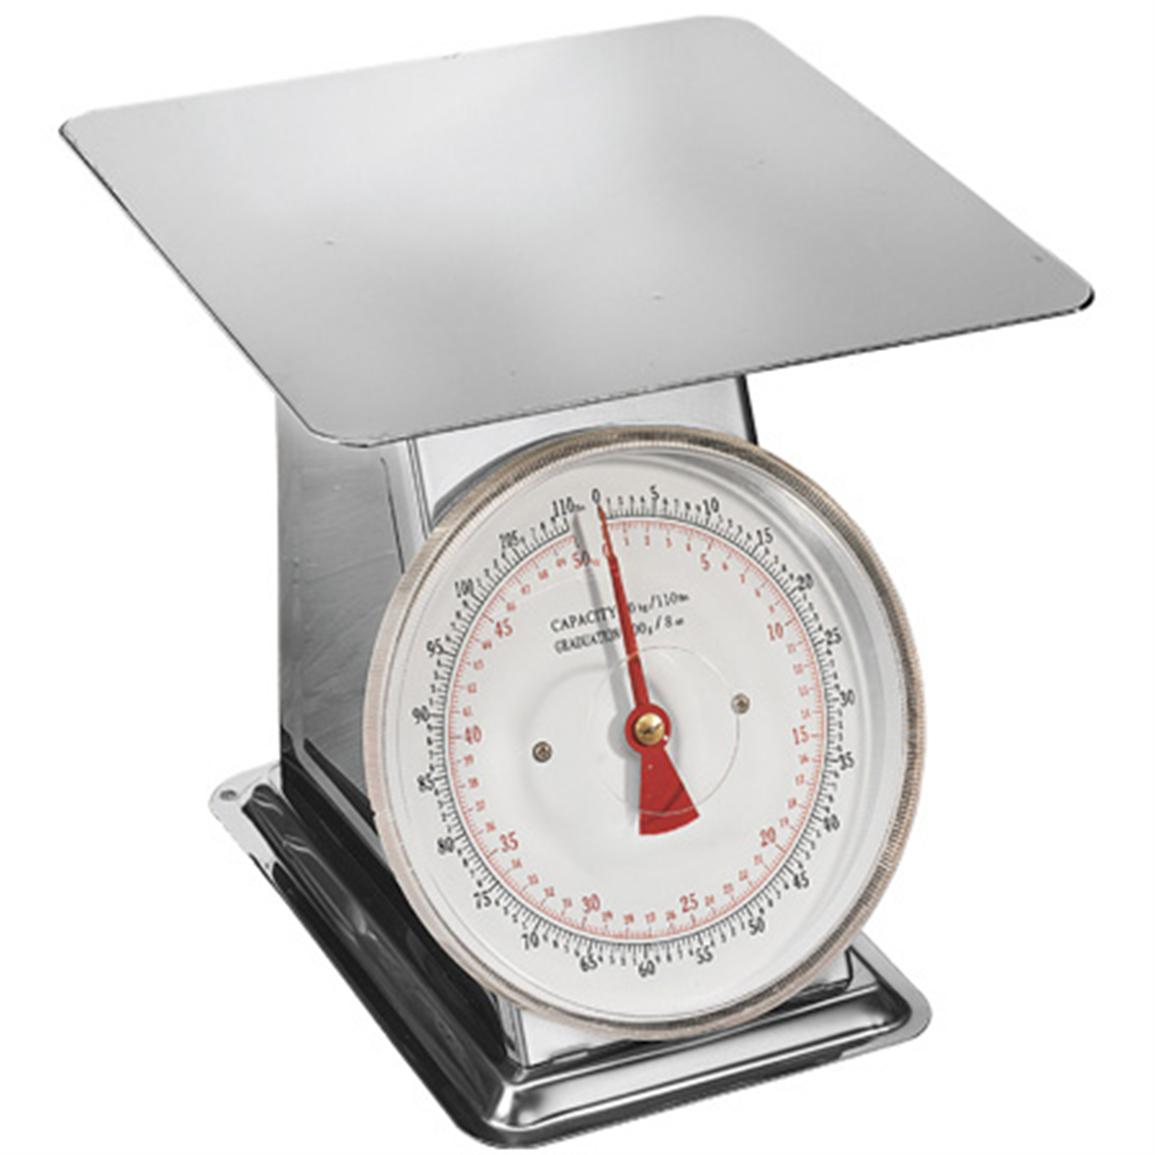 Weston Brand 110-lb. Dial Scale